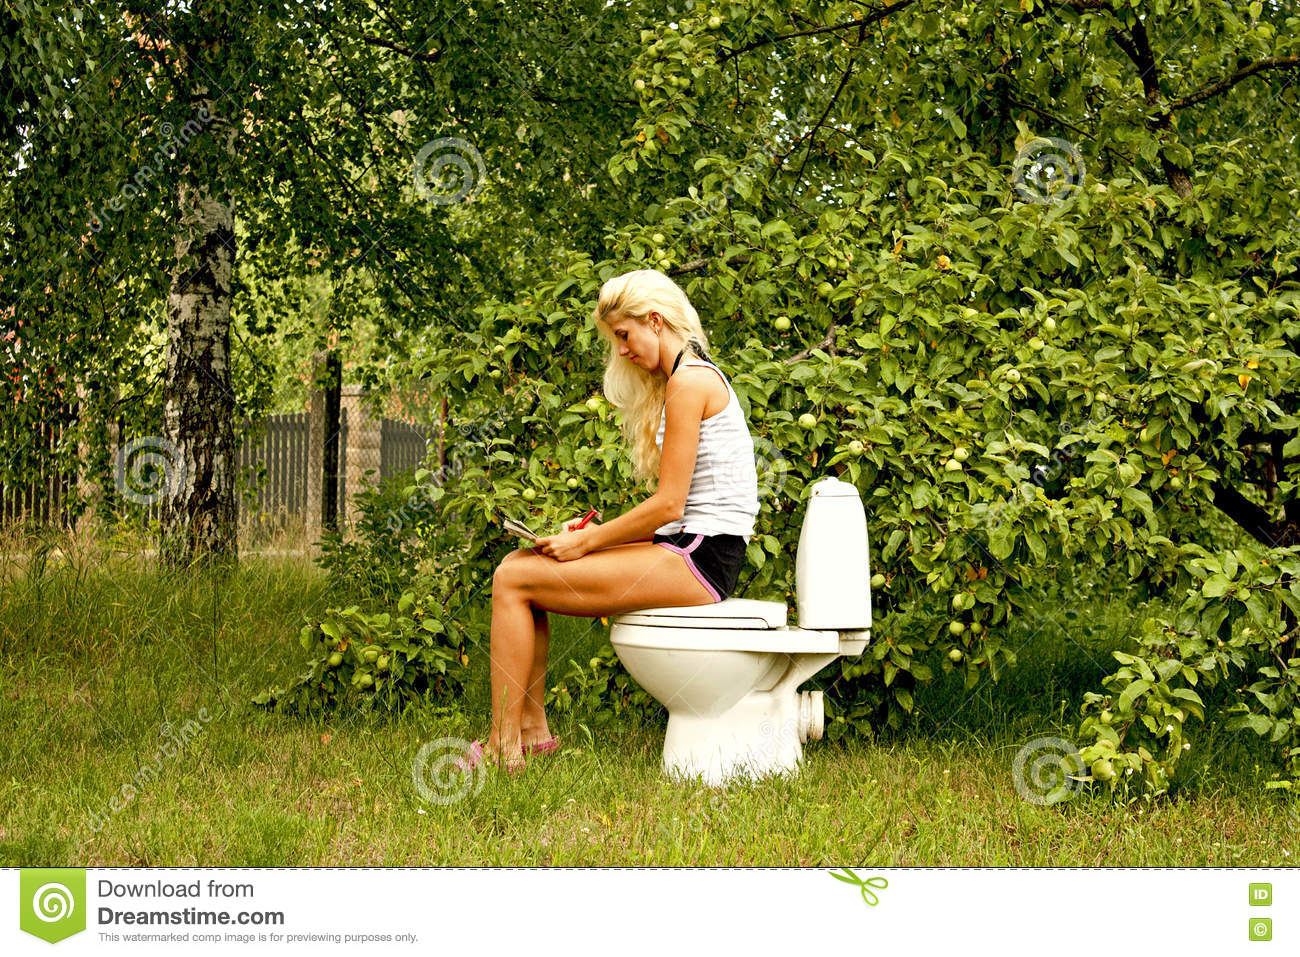 Blond woman sitting on a toilet bowl and reading a book